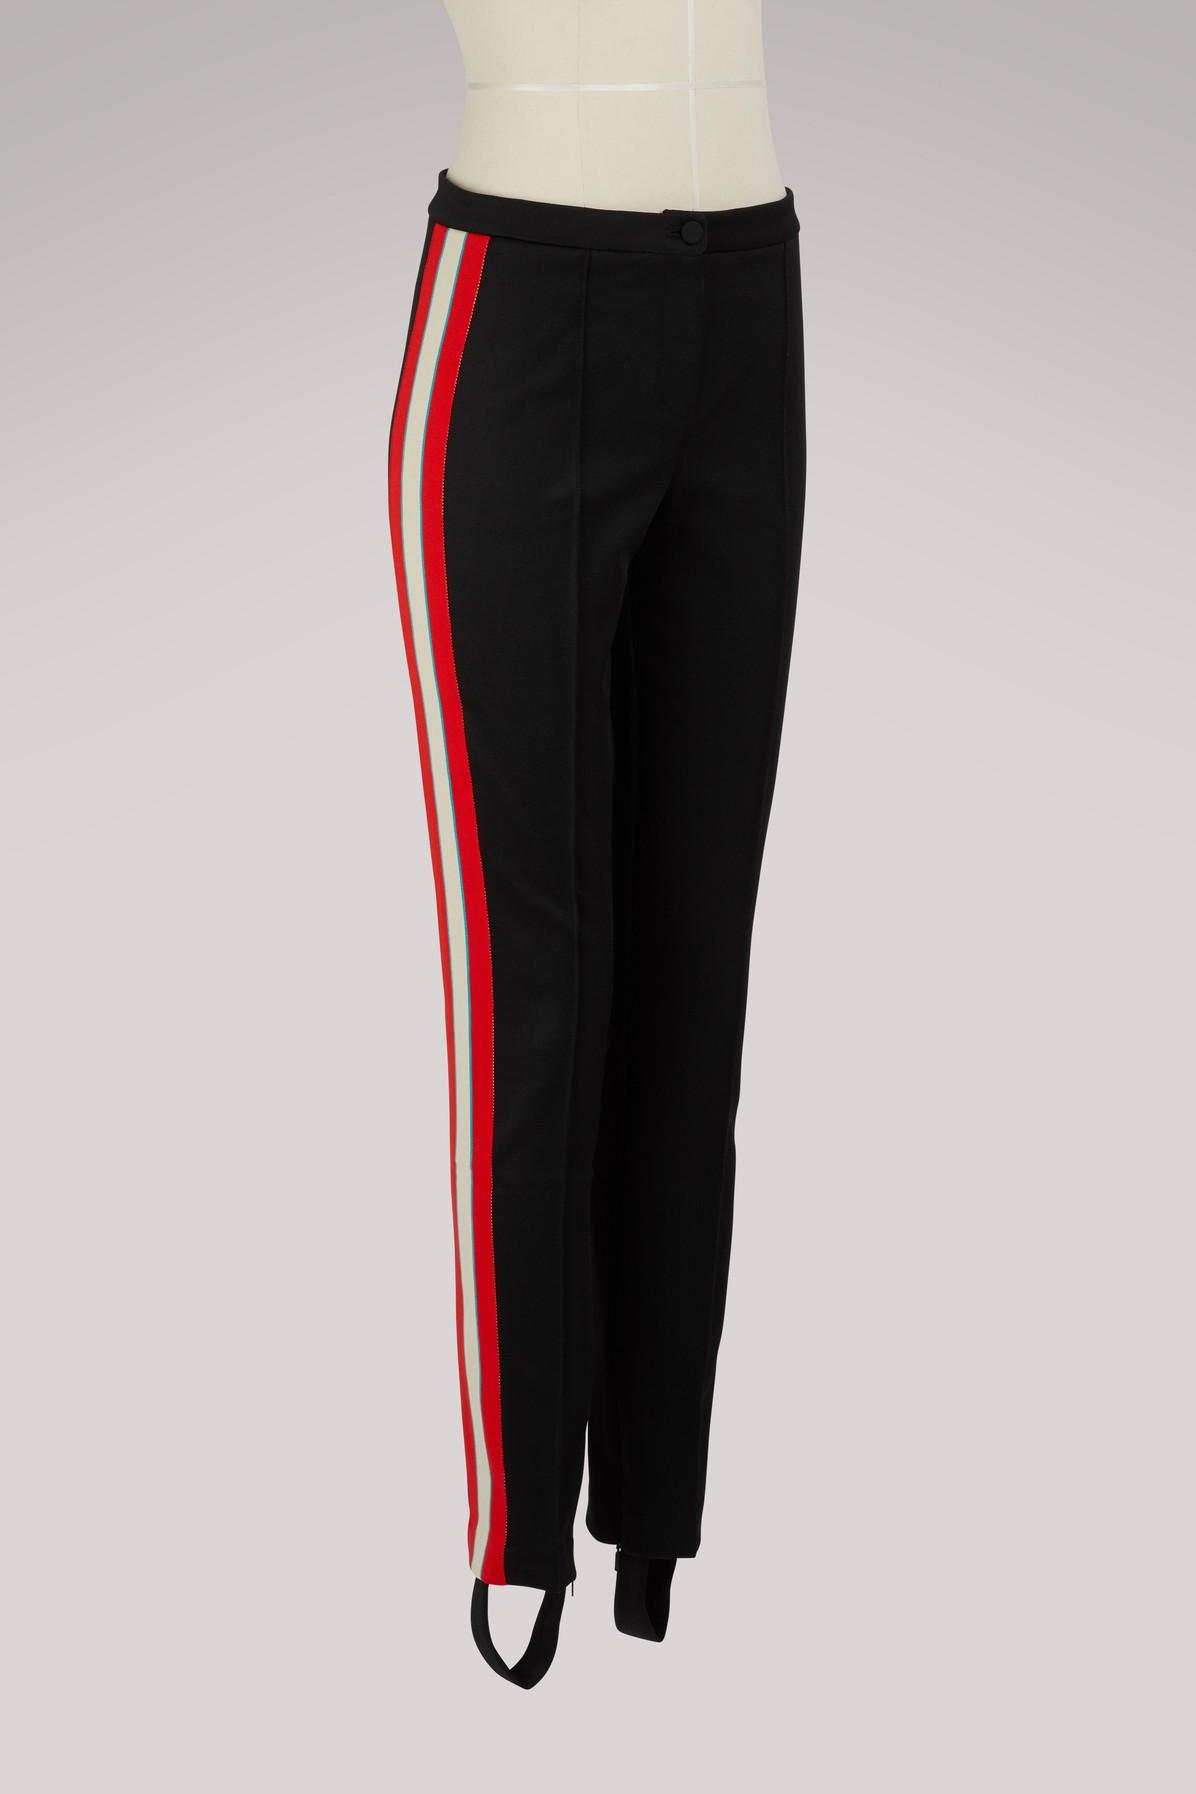 ea541c5941e Gucci - Black Technical Jersey Stirrup legging With Crystals - Lyst. View  fullscreen